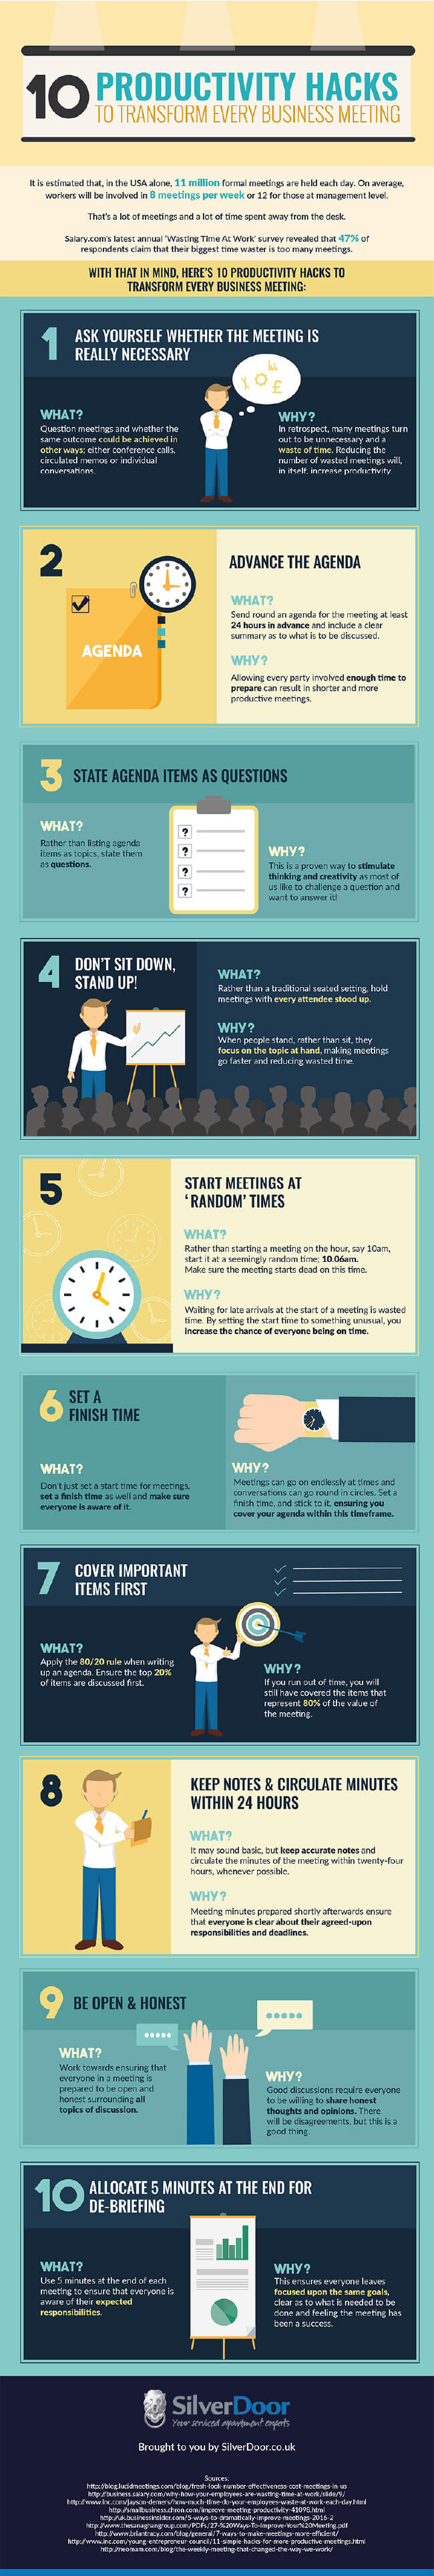 Image titled 10 productivity hacks to transform every business meeting